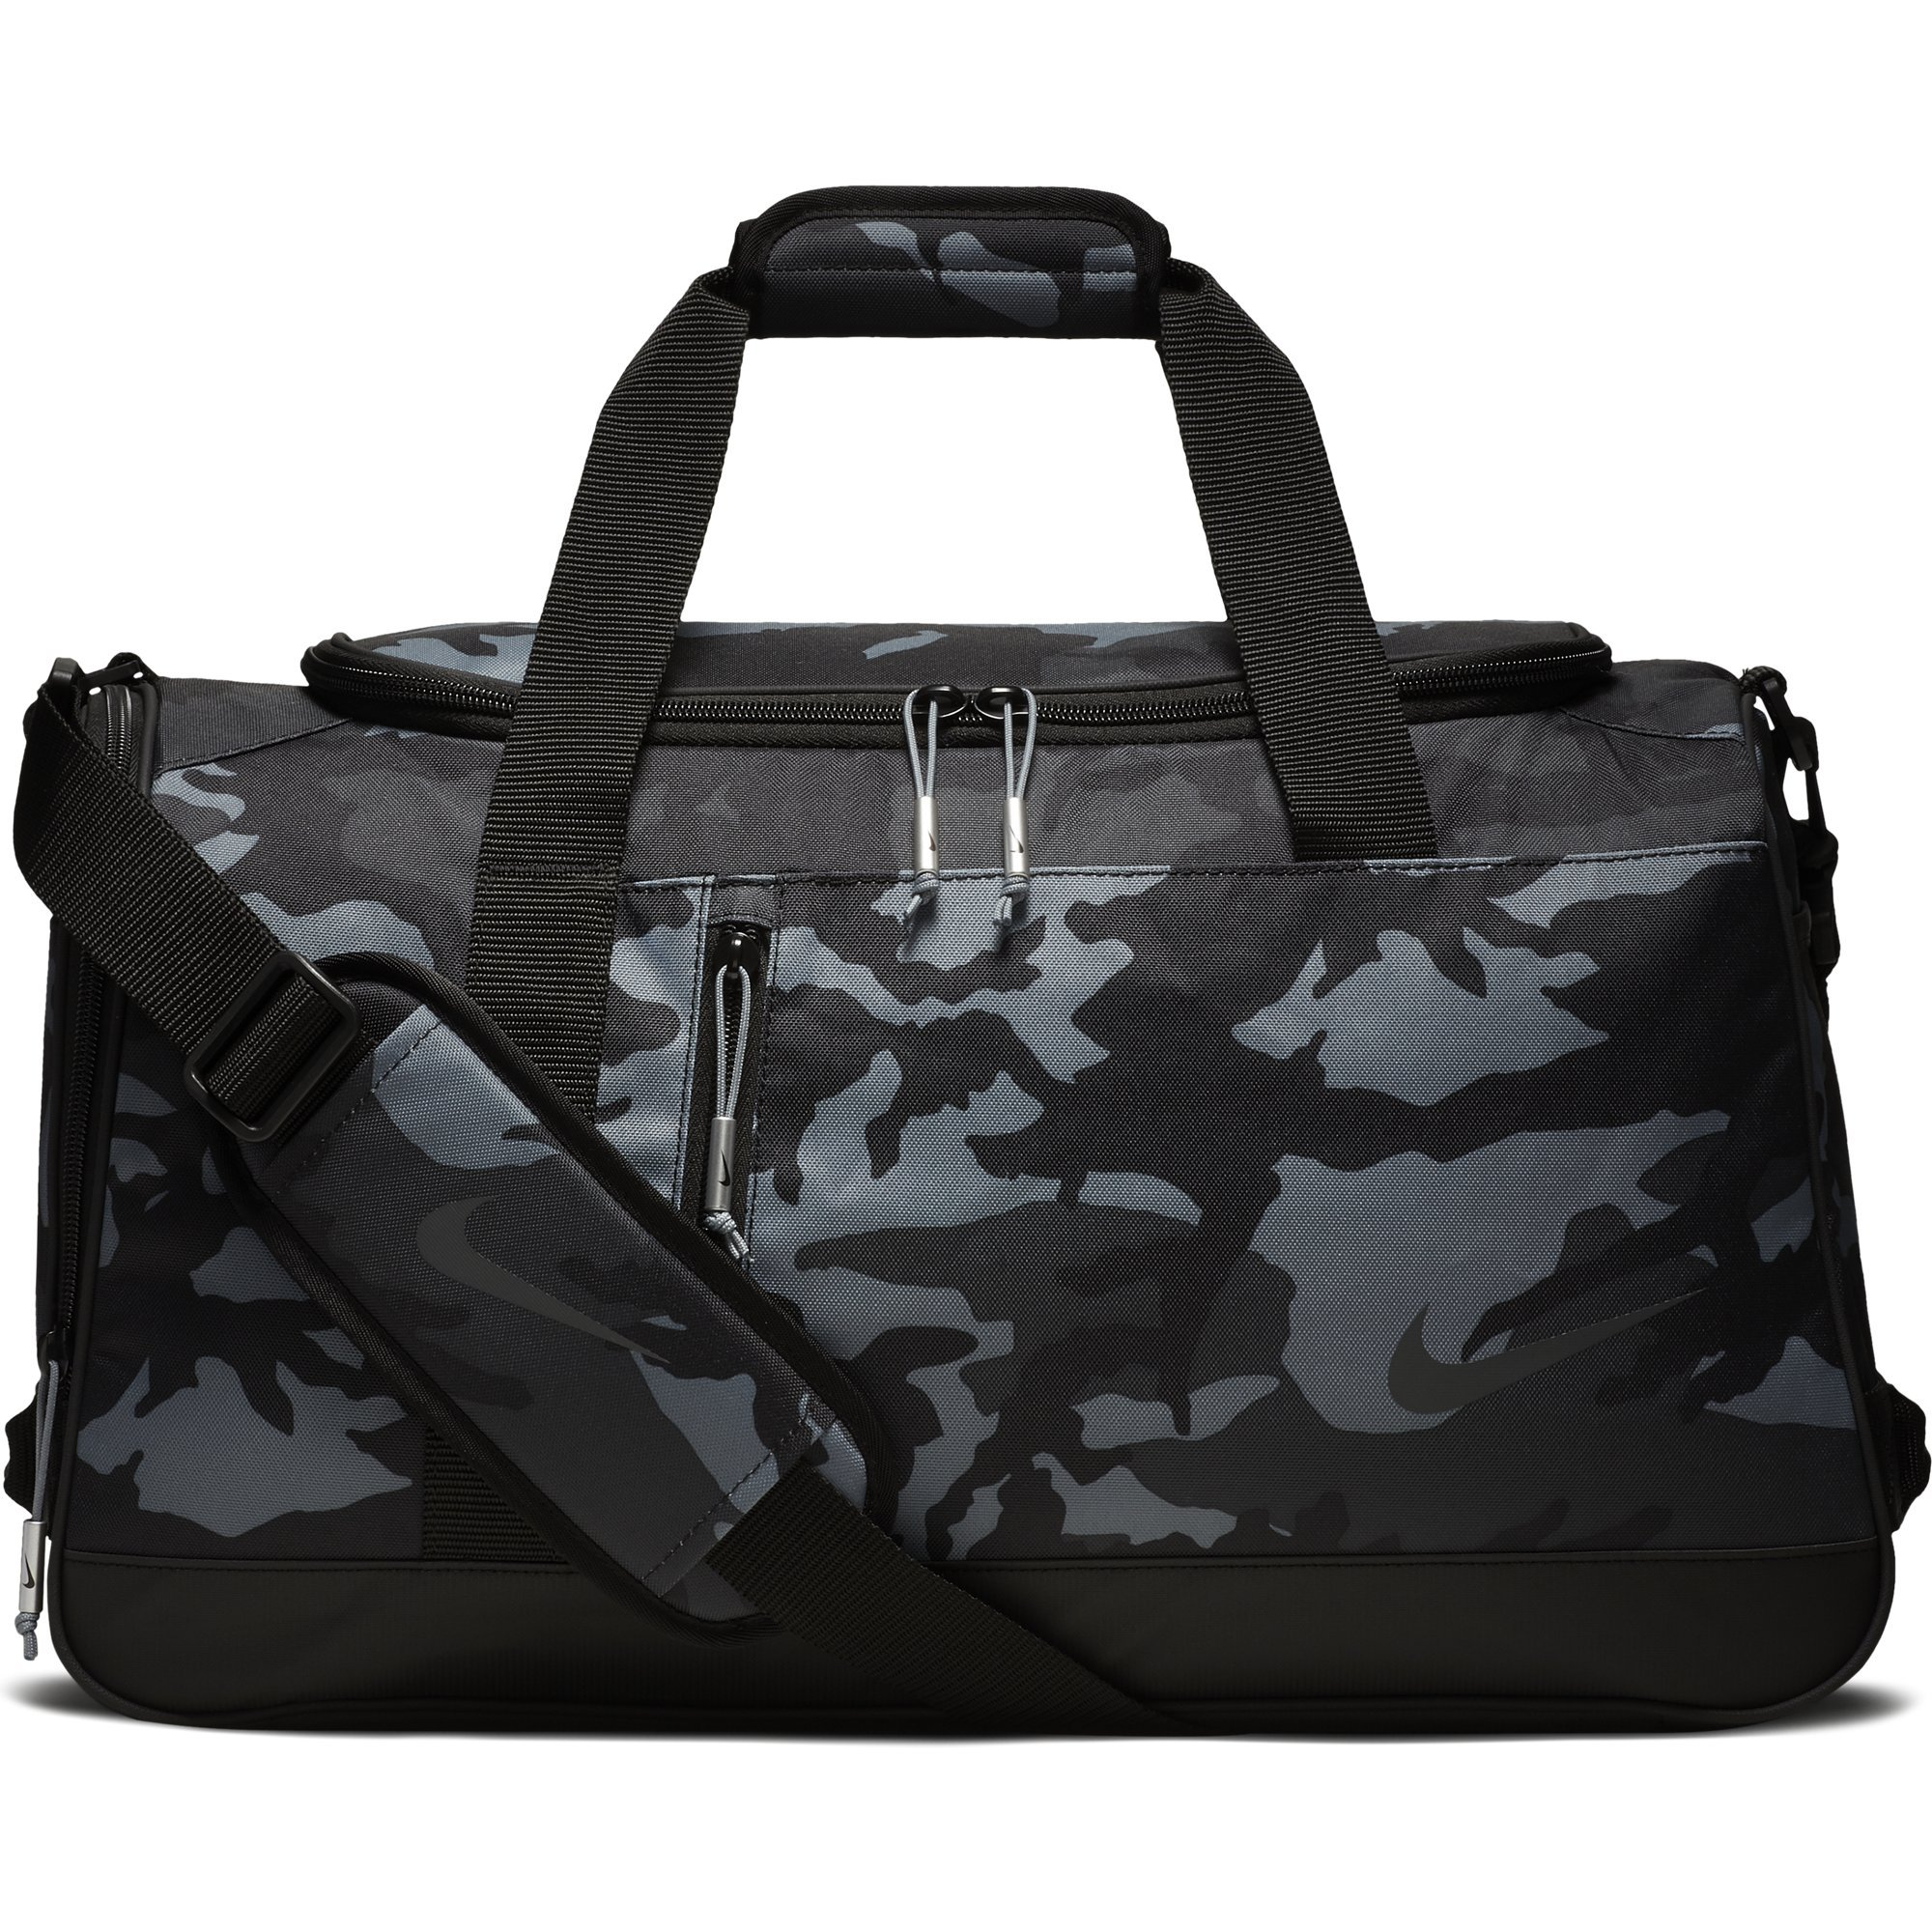 NIKE Sport All Over Print Golf Duffel Bag, Anthracite/Black/Anthracite